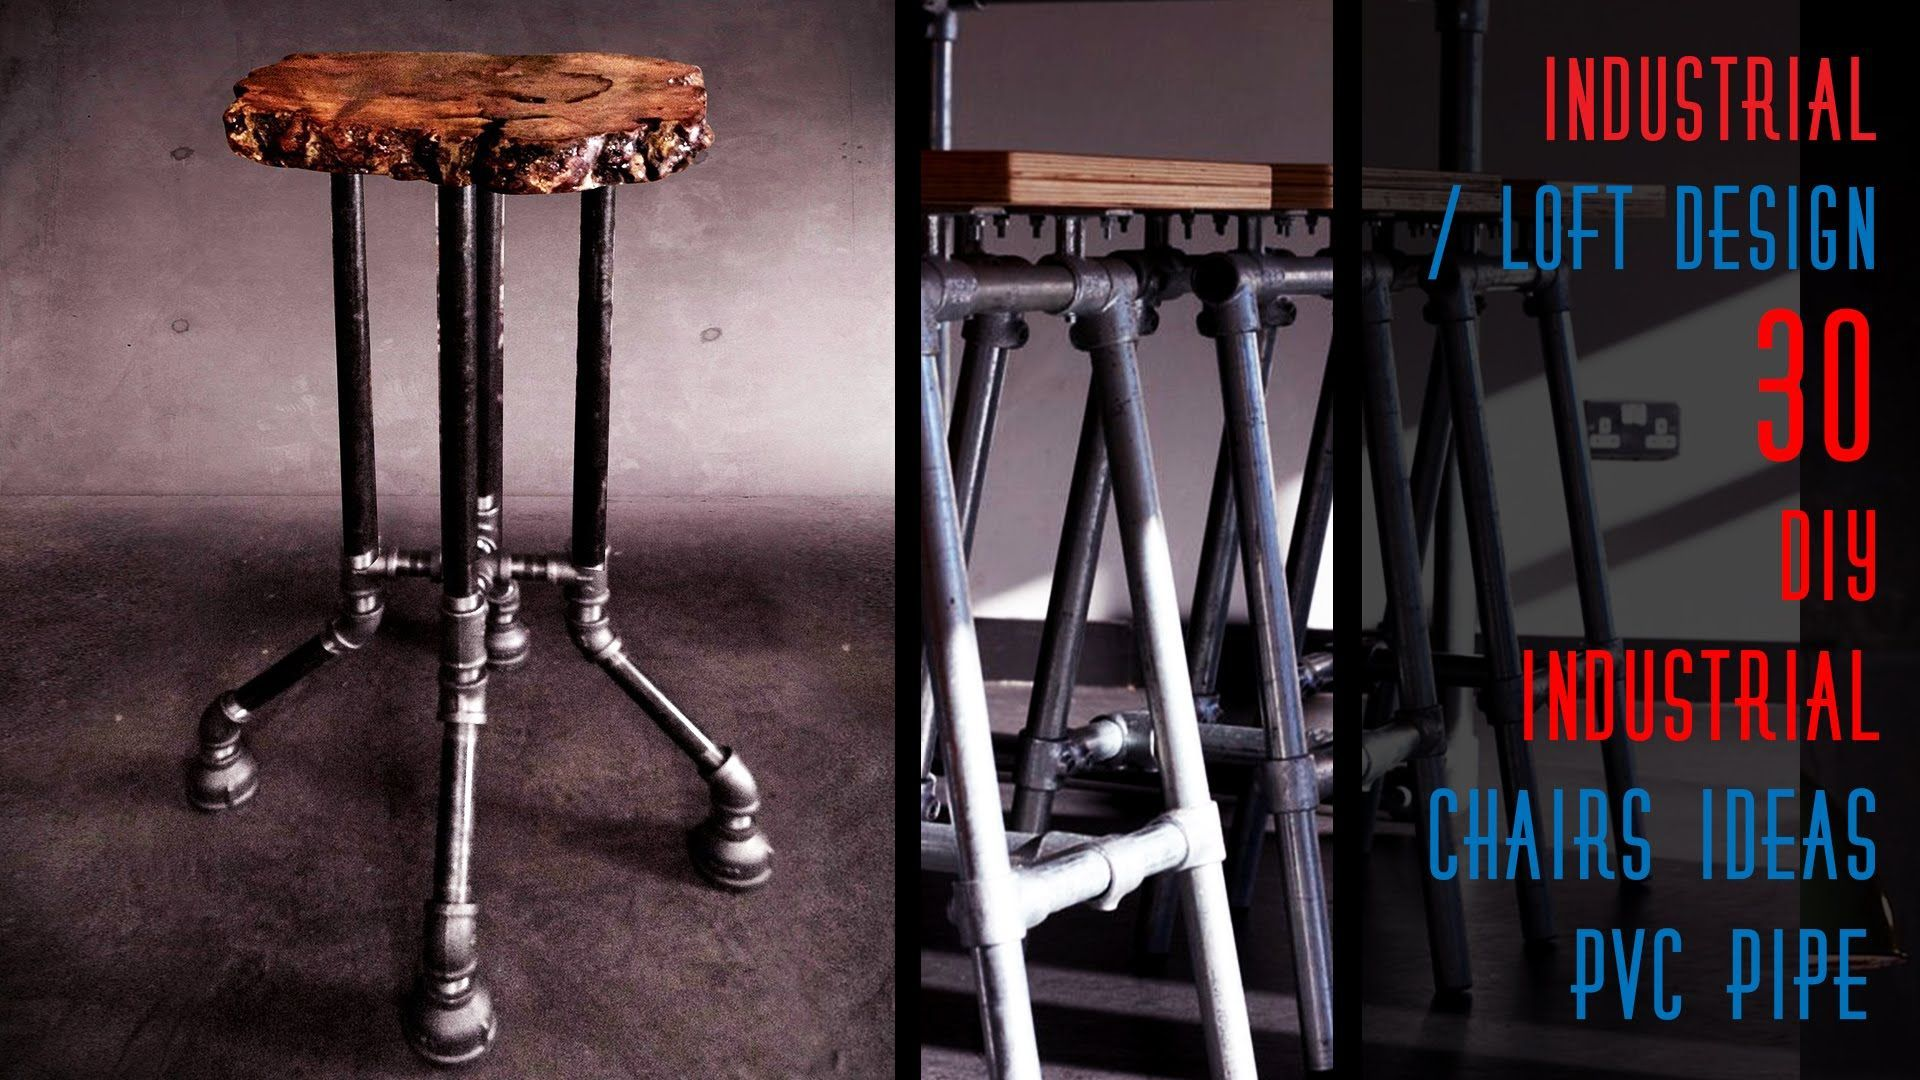 30 Diy Industrial Chairs Ideas Pvc Pipe There Is Something